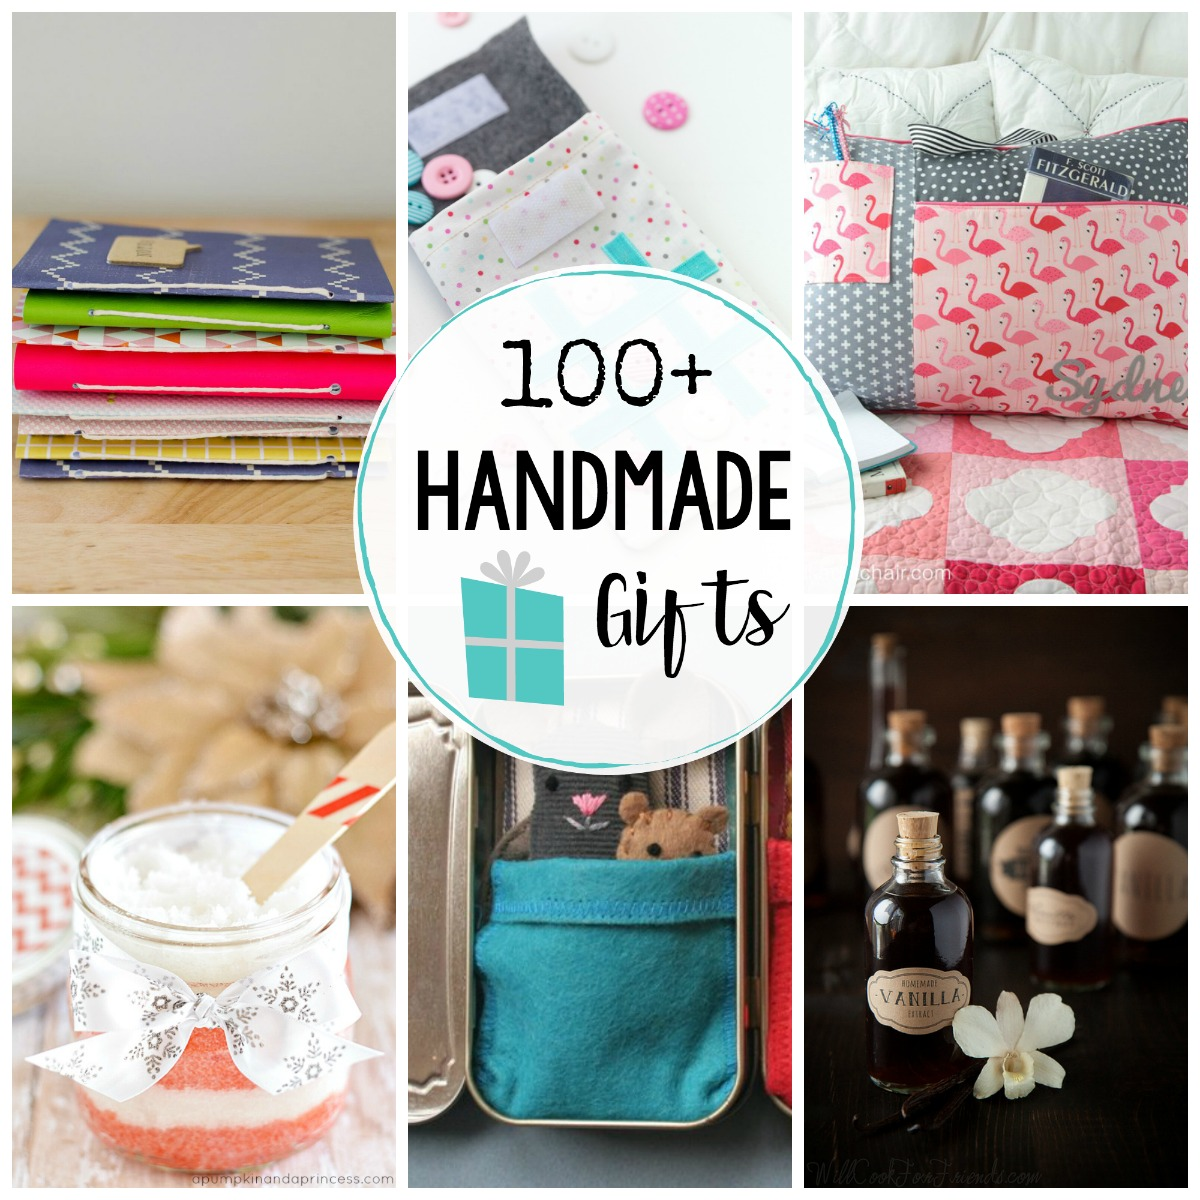 Tons of Handmade Gifts - 100+ Ideas for Everyone on Your List!